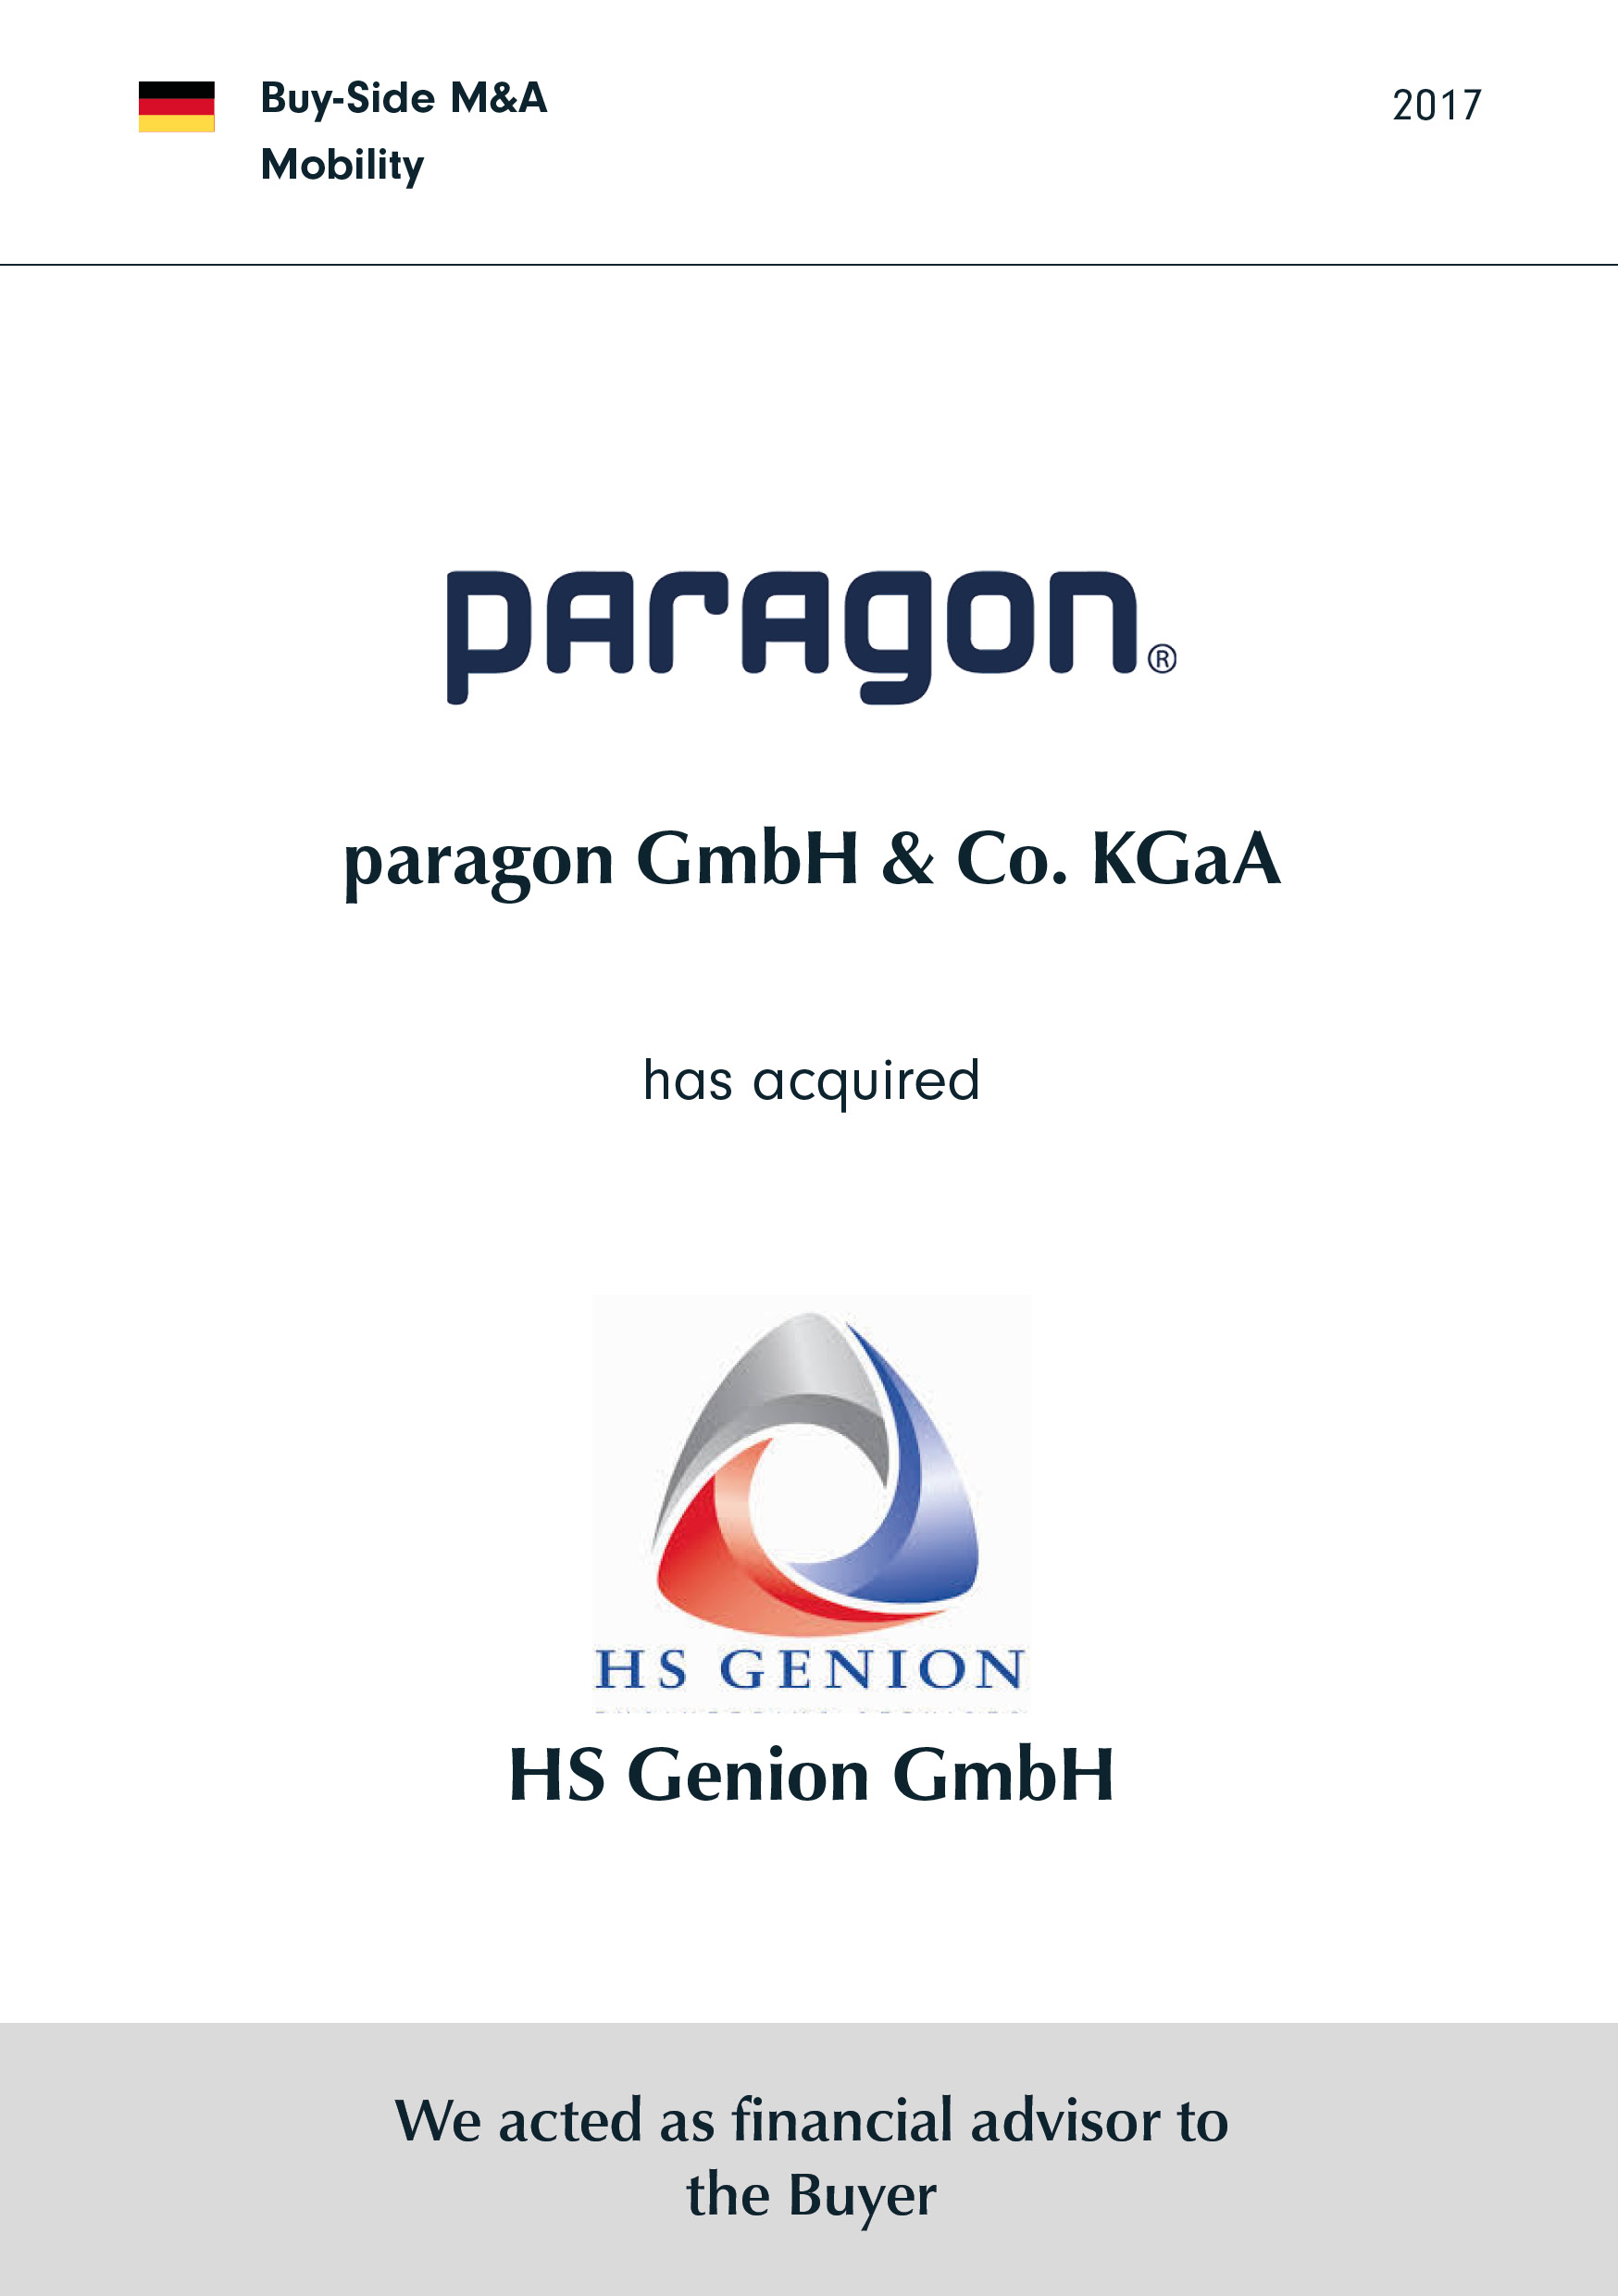 paragon has acquired HS Genion